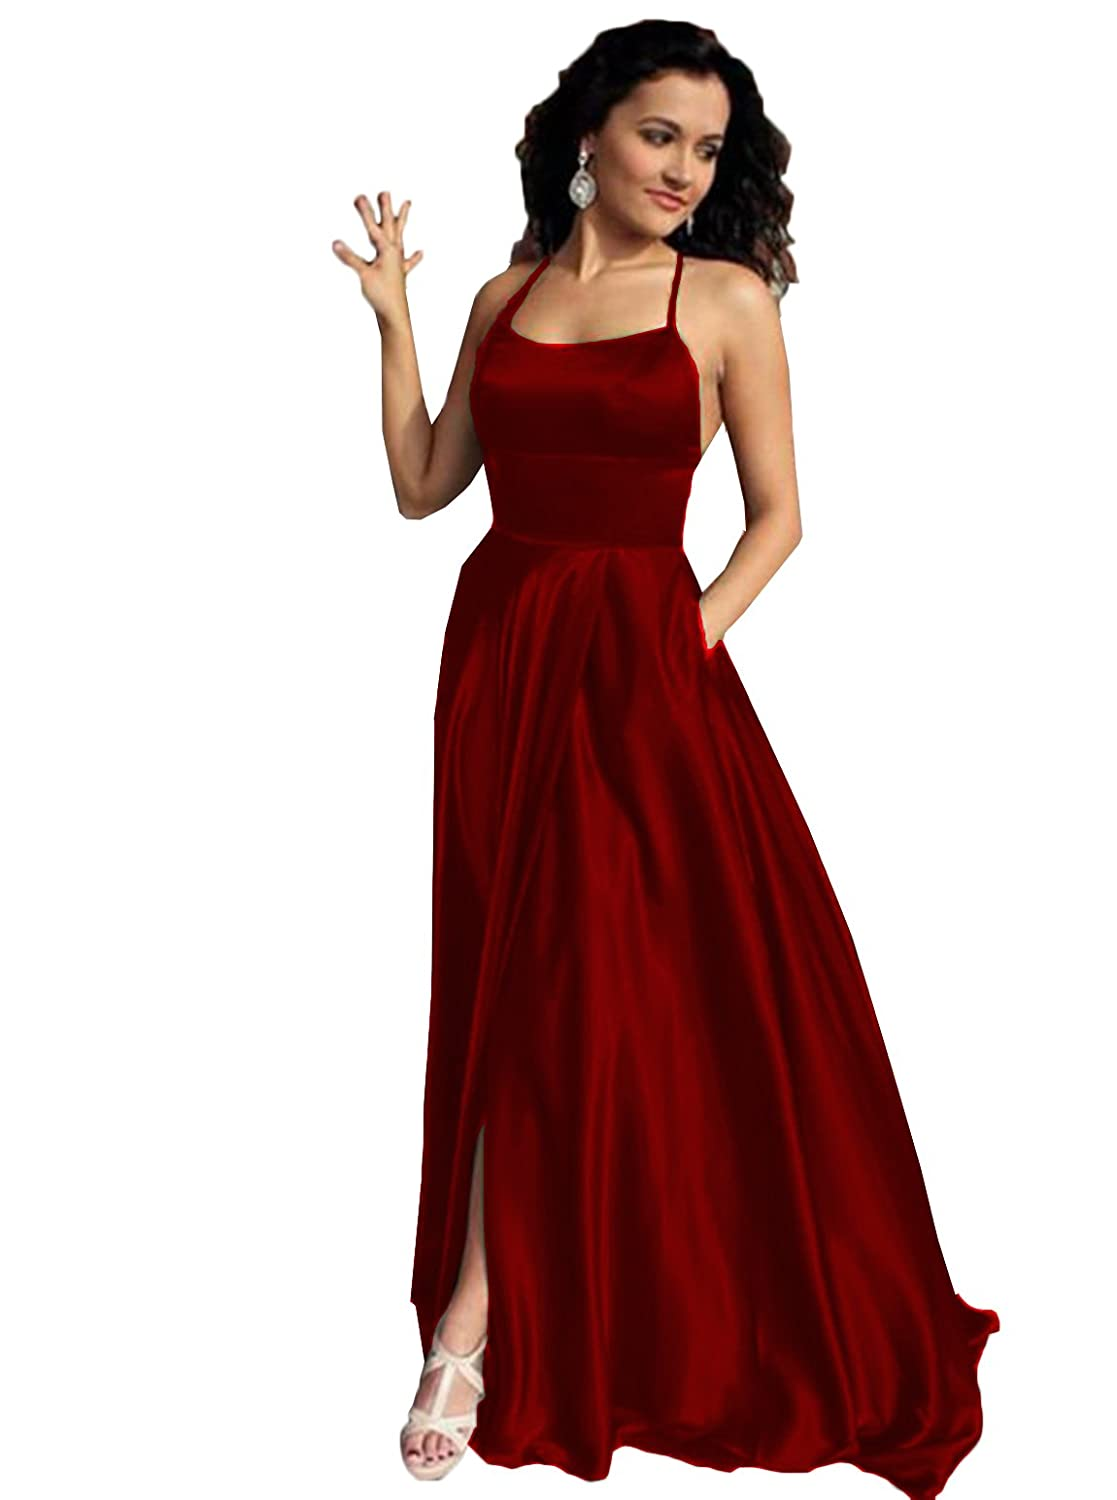 Scarisee Womens V-Neck Prom Evening Dress Split Formal Party Gown Court TrainSA5